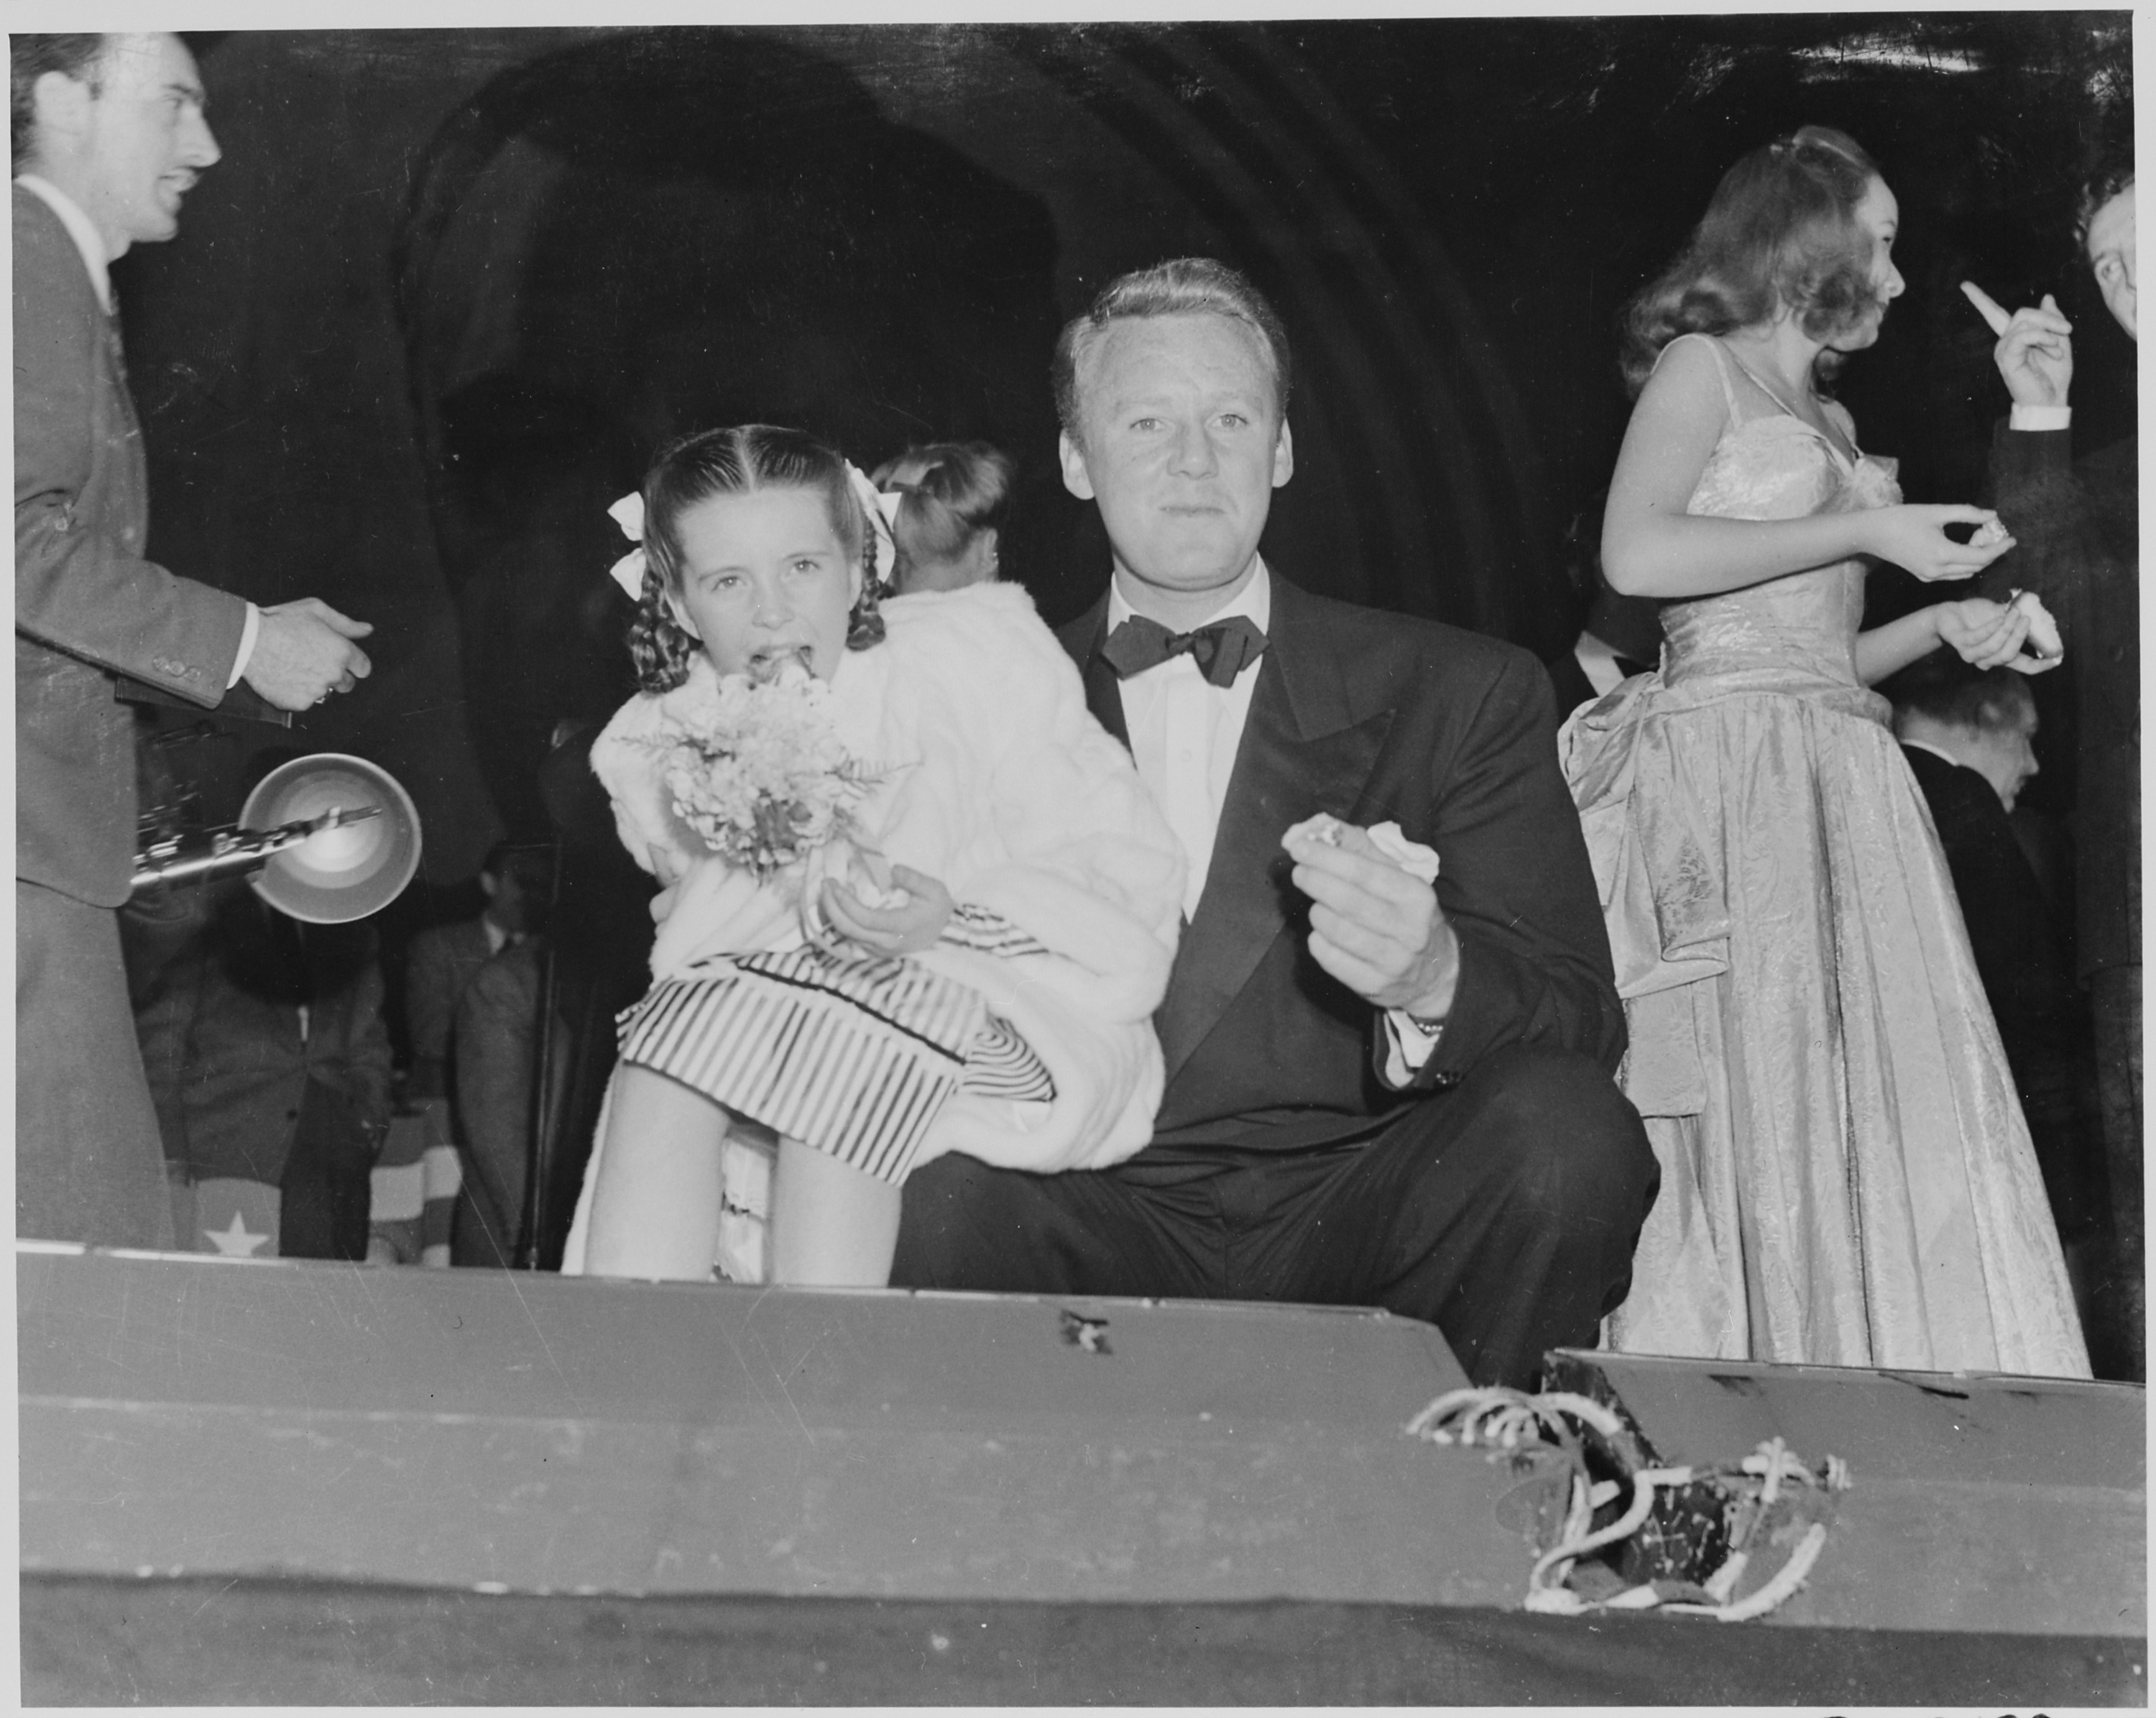 FilePhotograph of movie star Van Johnson with actress